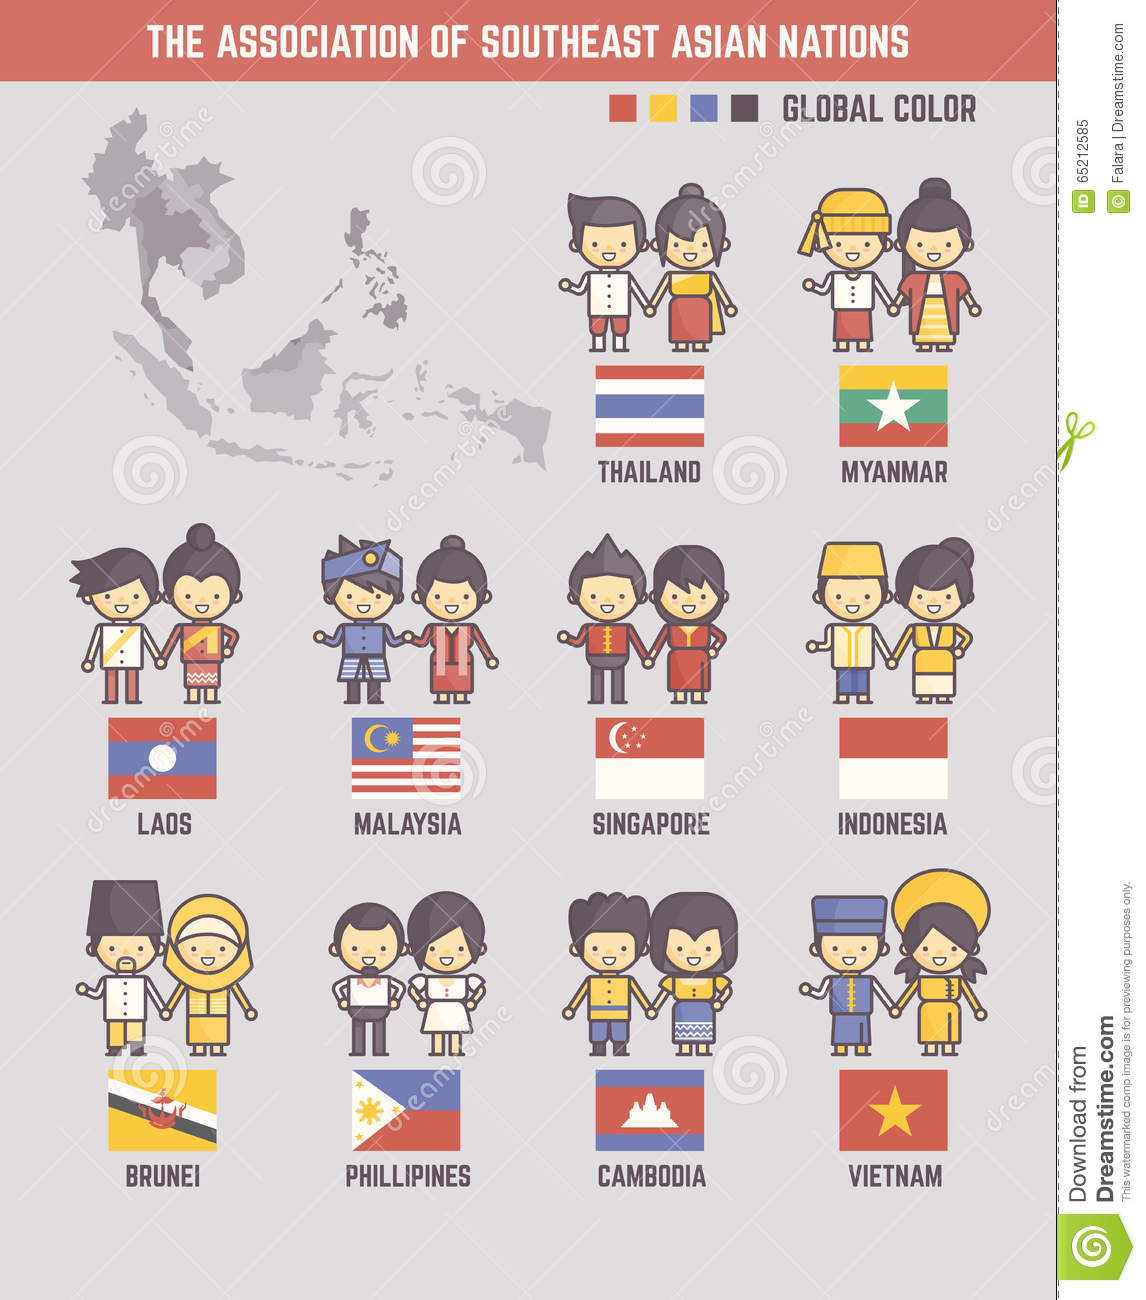 the association of southeast asian nations Photo about the association of southeast asian nations cartoon characters and flags illustration of culture, cooperation, nation - 65212585.